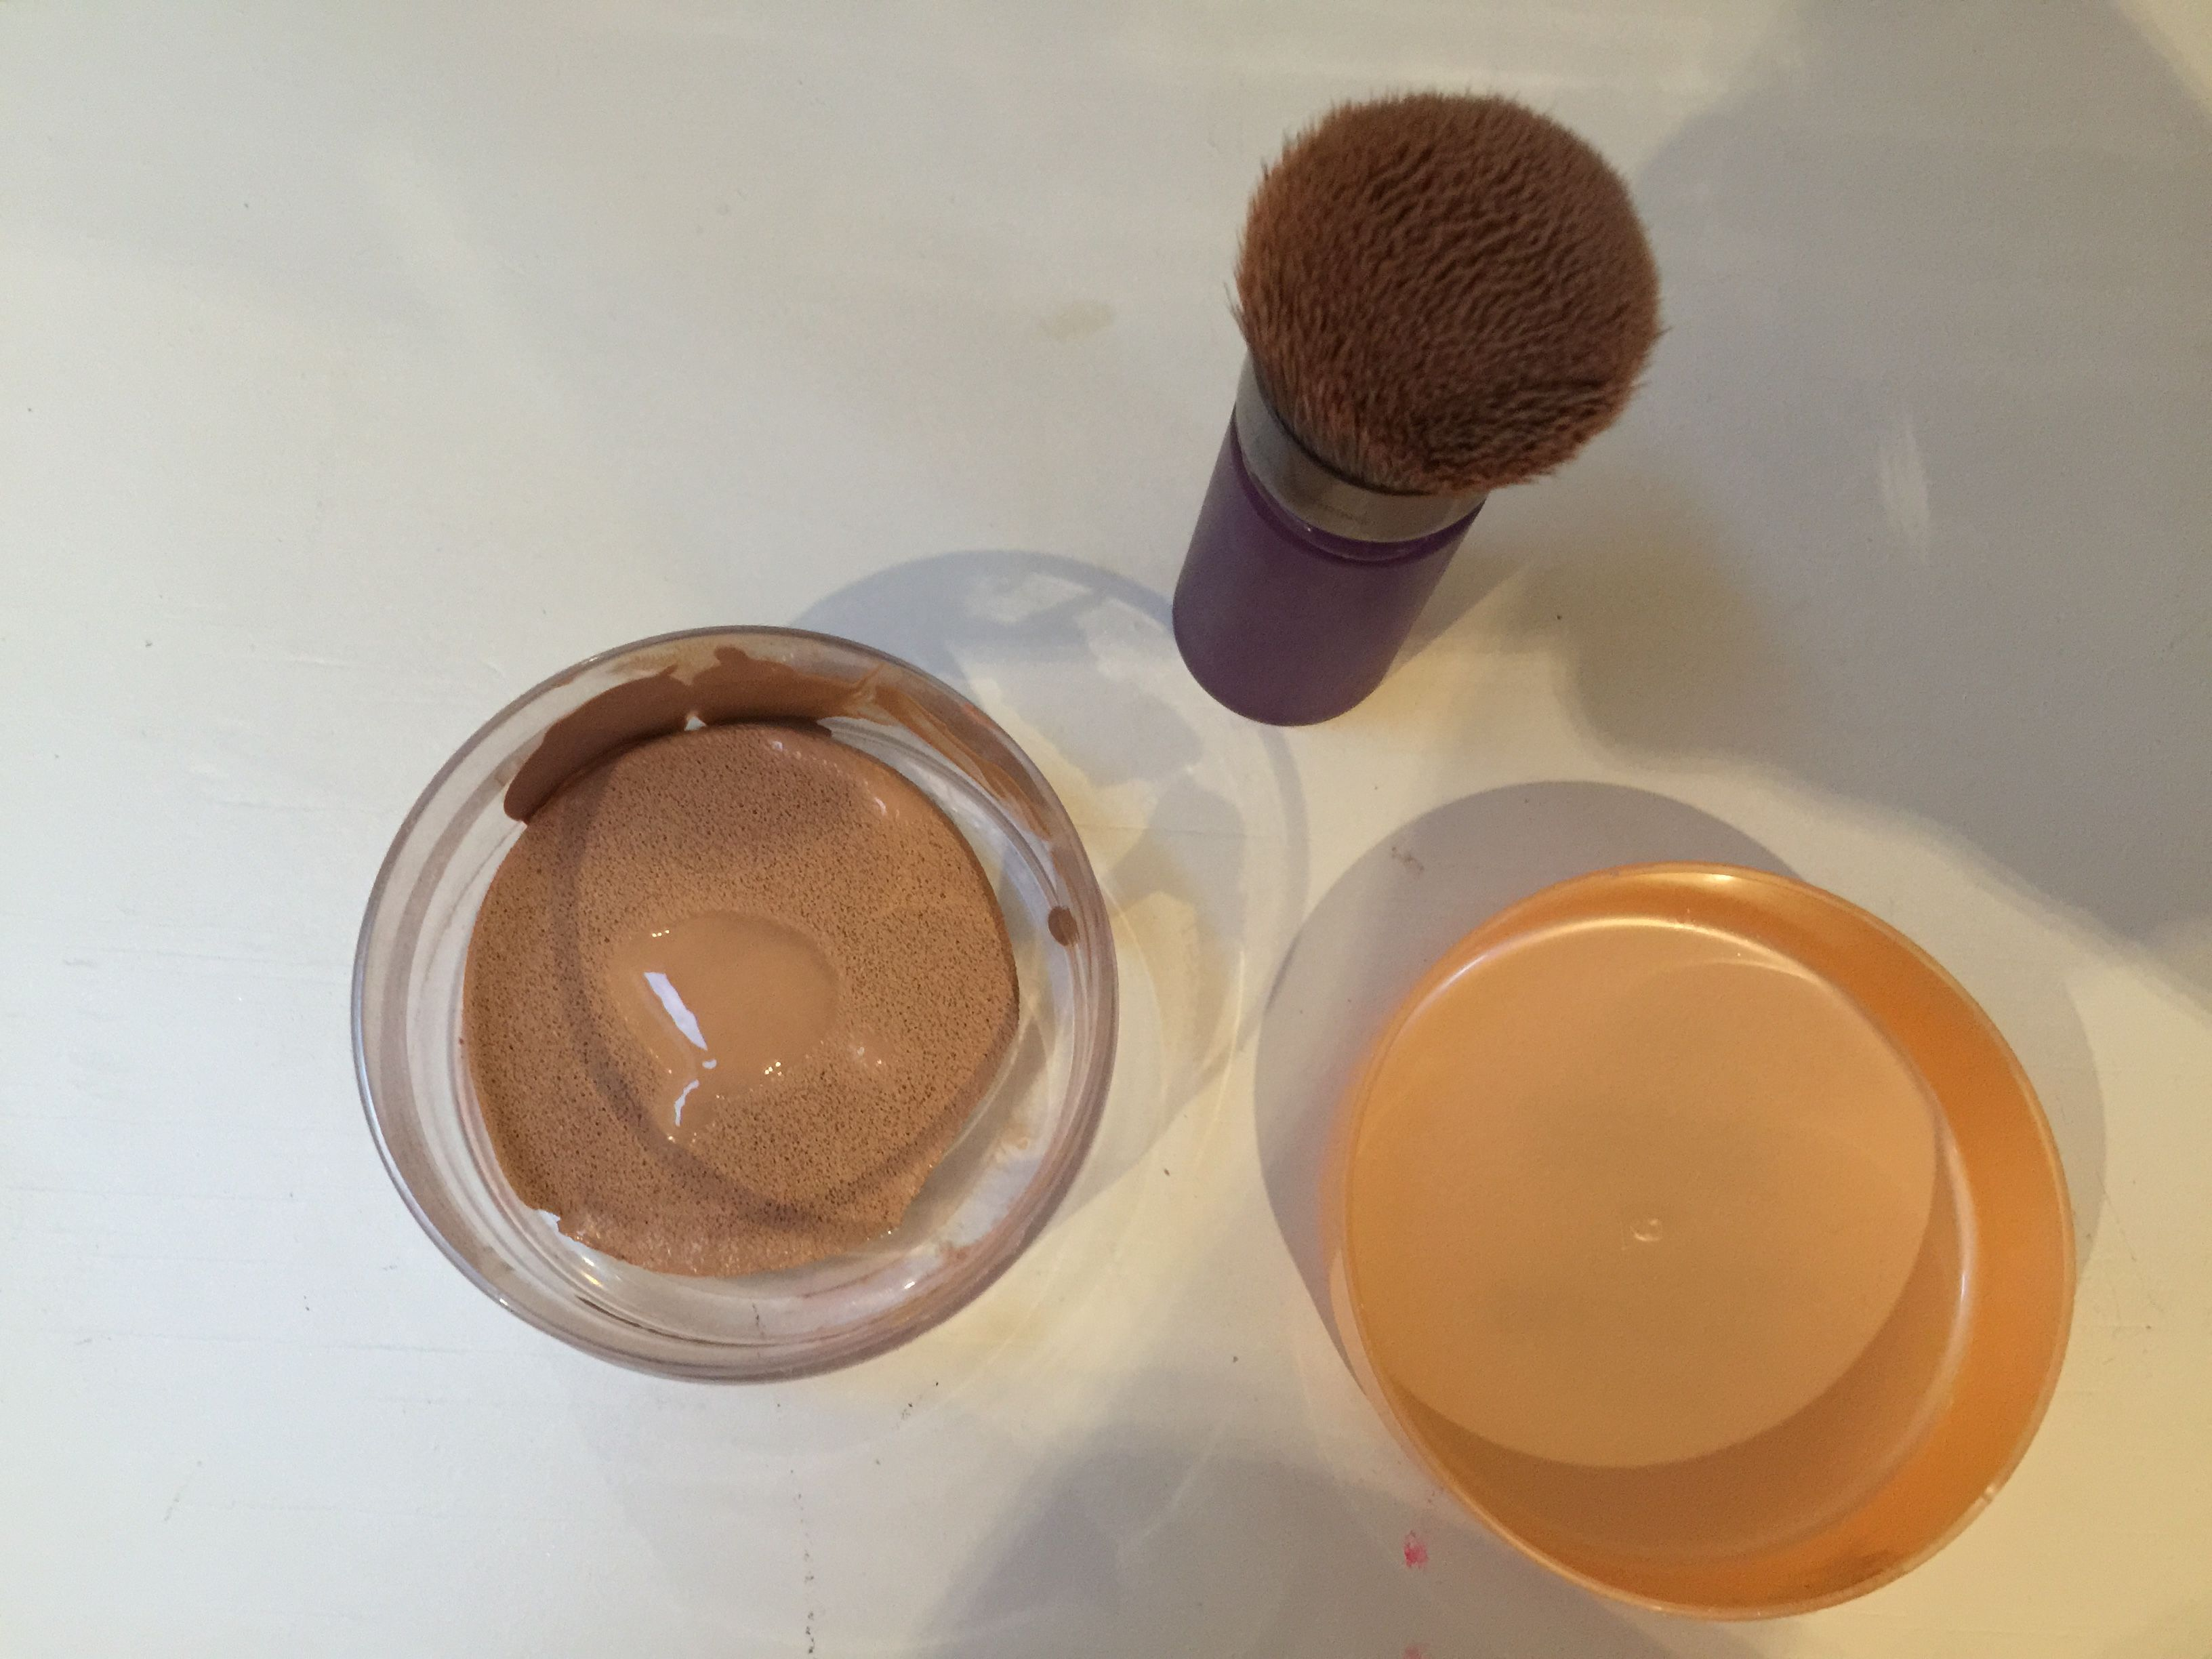 IT Cosmetics Celebration Foundation Dupe! Simply put a